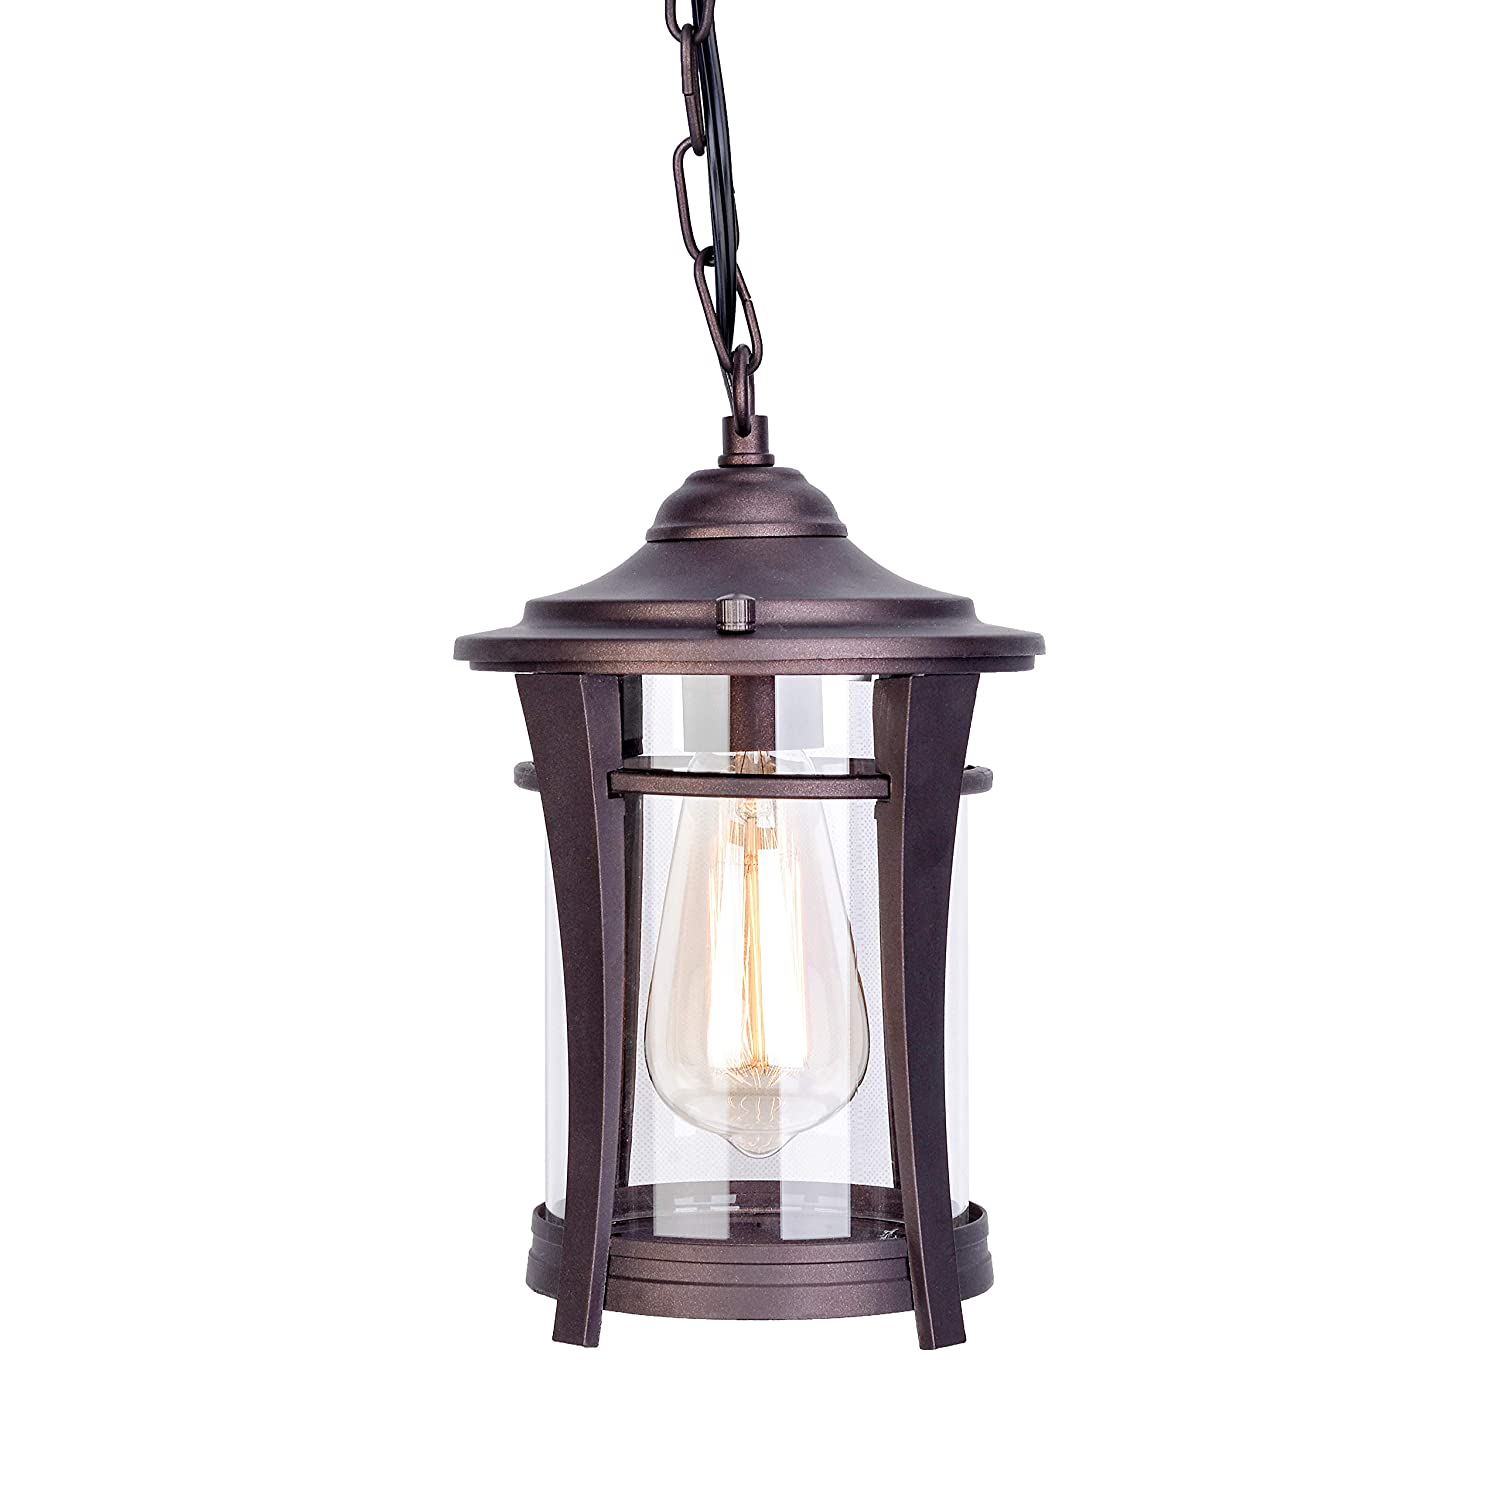 Stepeak tranditional exterior outdoor ceiling pendant light bronze finished nightstand gazebo chandelier with clear glass for porch island